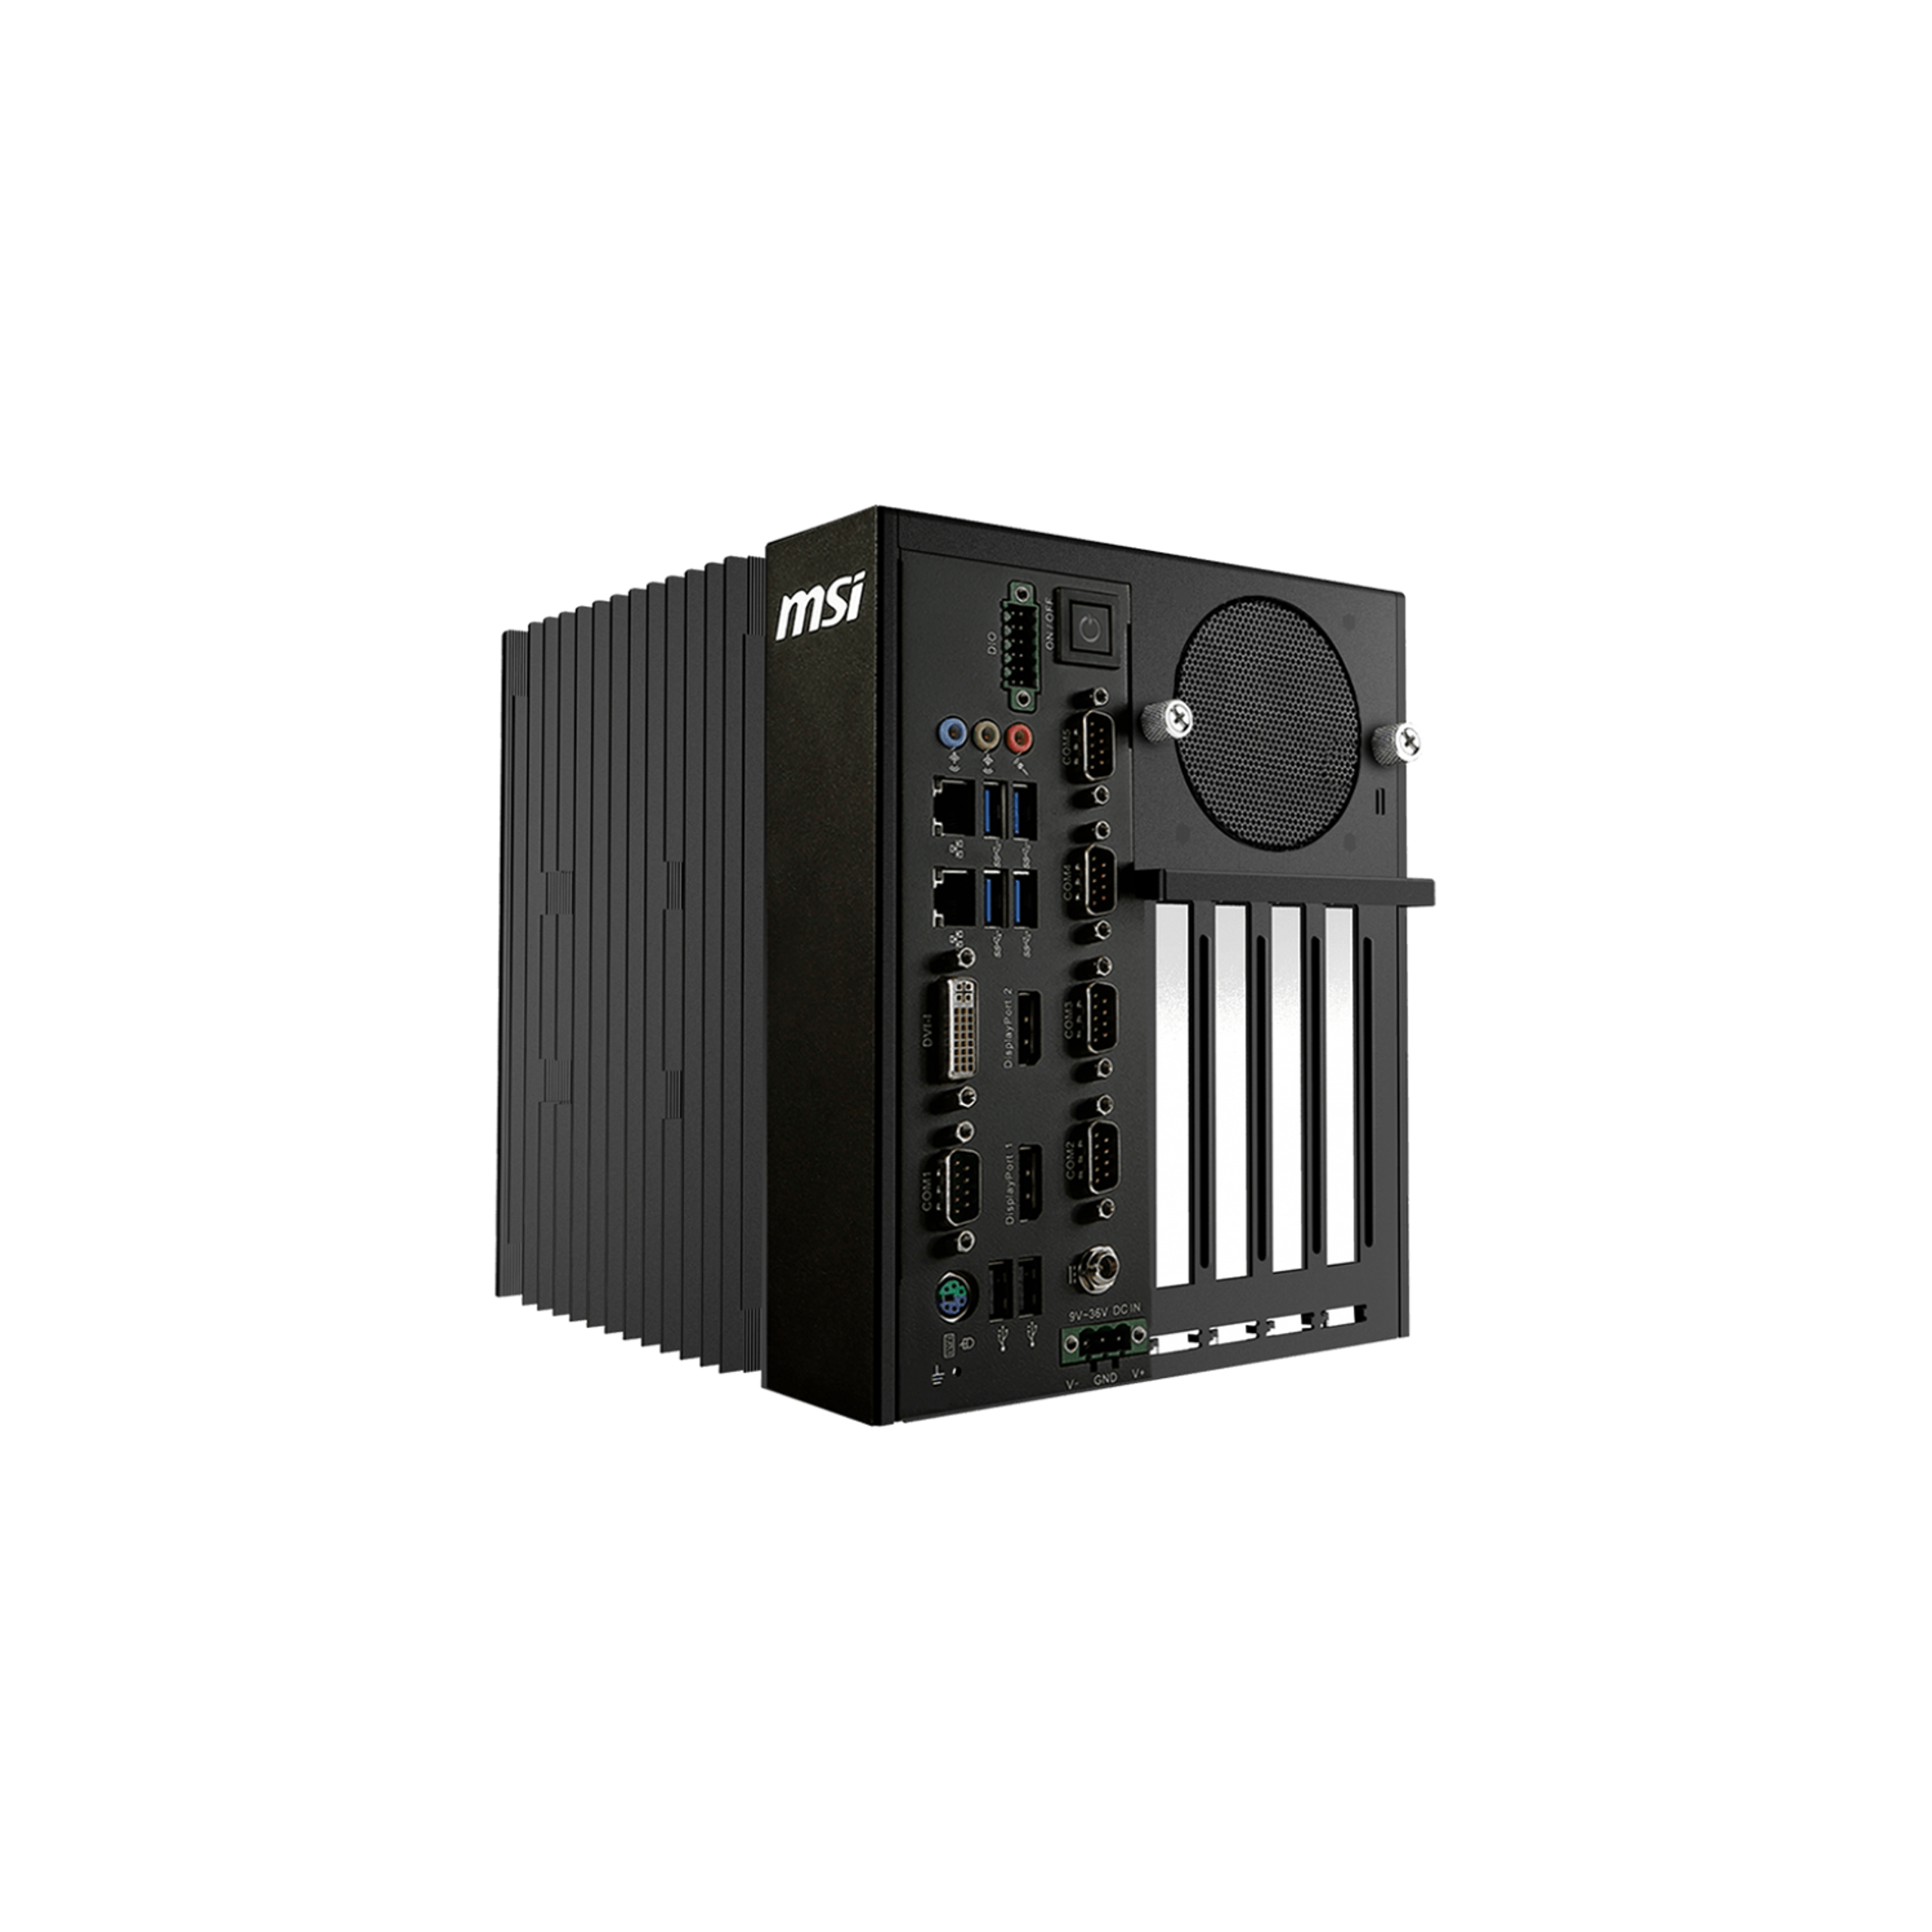 BPC-500-MS5804 4 Slot Intel Core i5